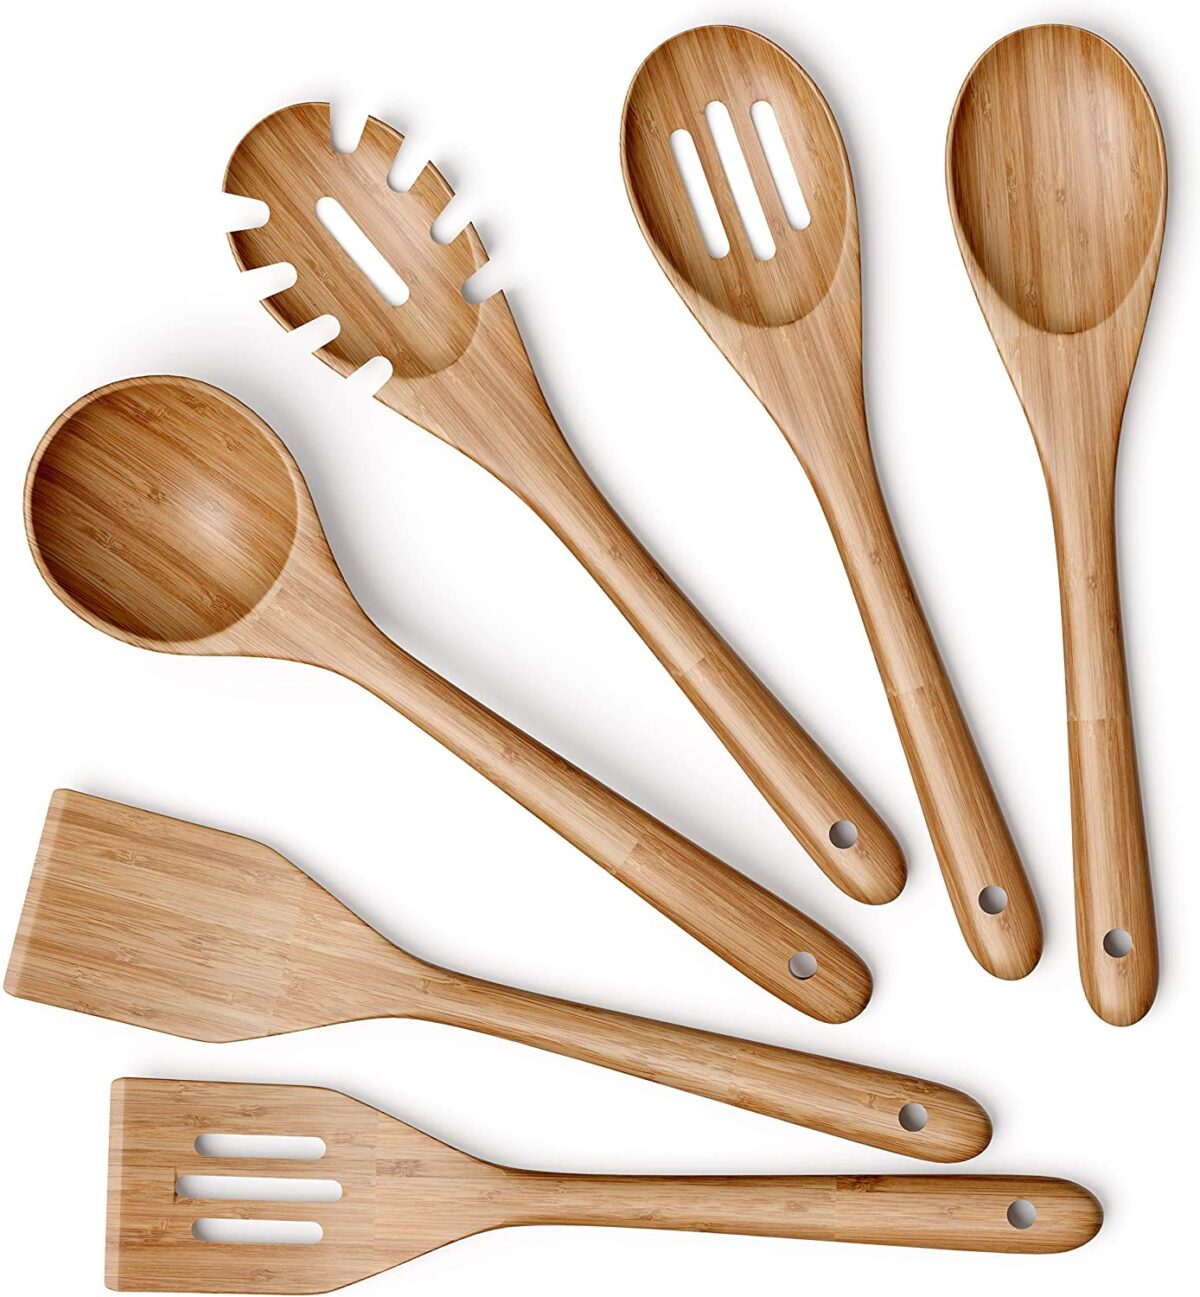 Bamboo Wooden Utensils for Cooking